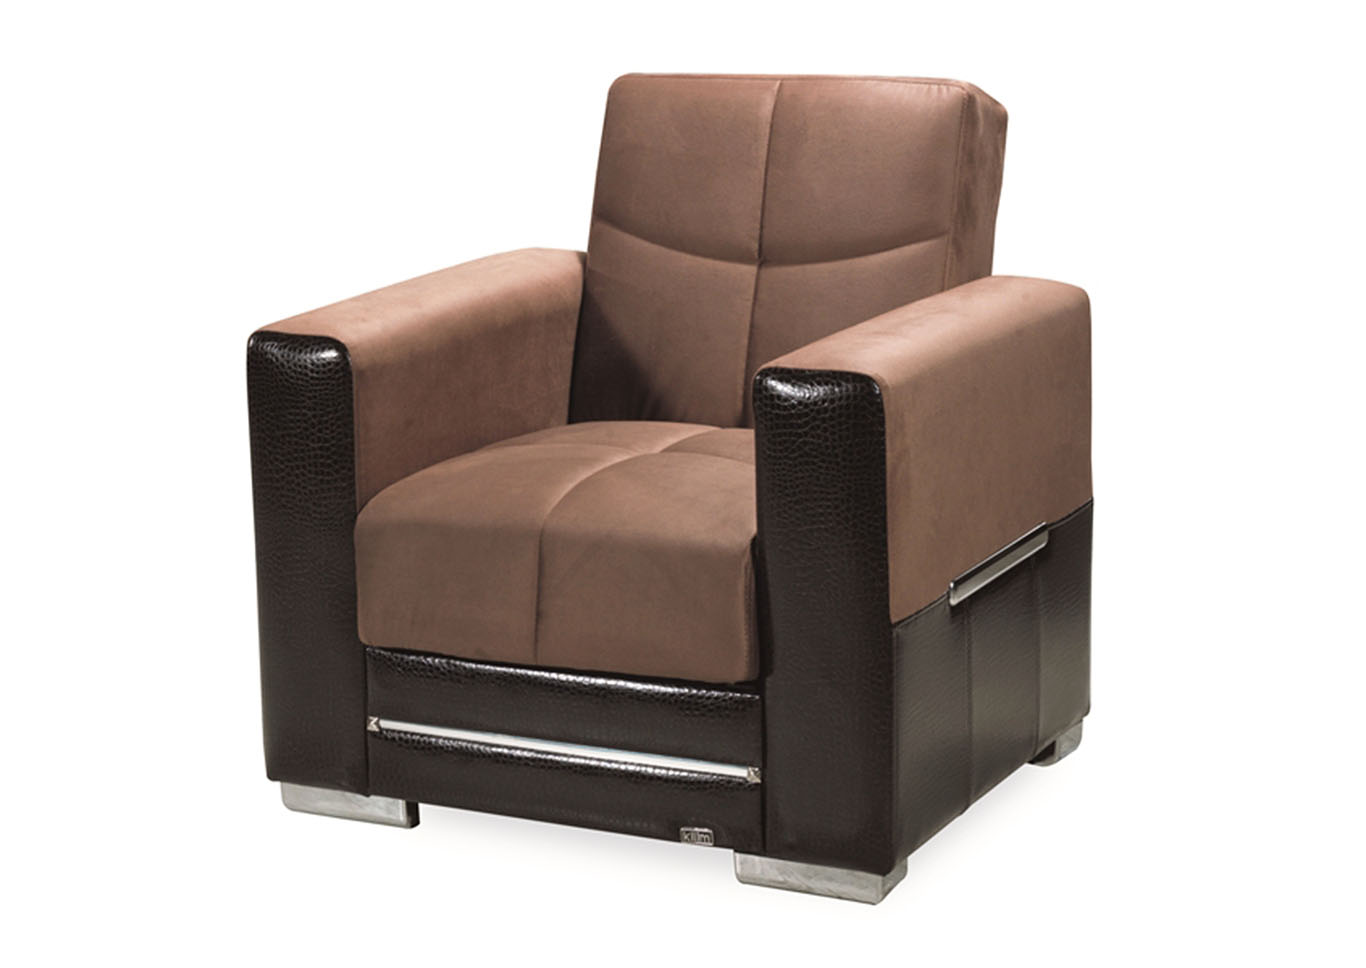 Monaco Brown/Brown Microsuede Arm Chair,CasaMode Functional Furniture